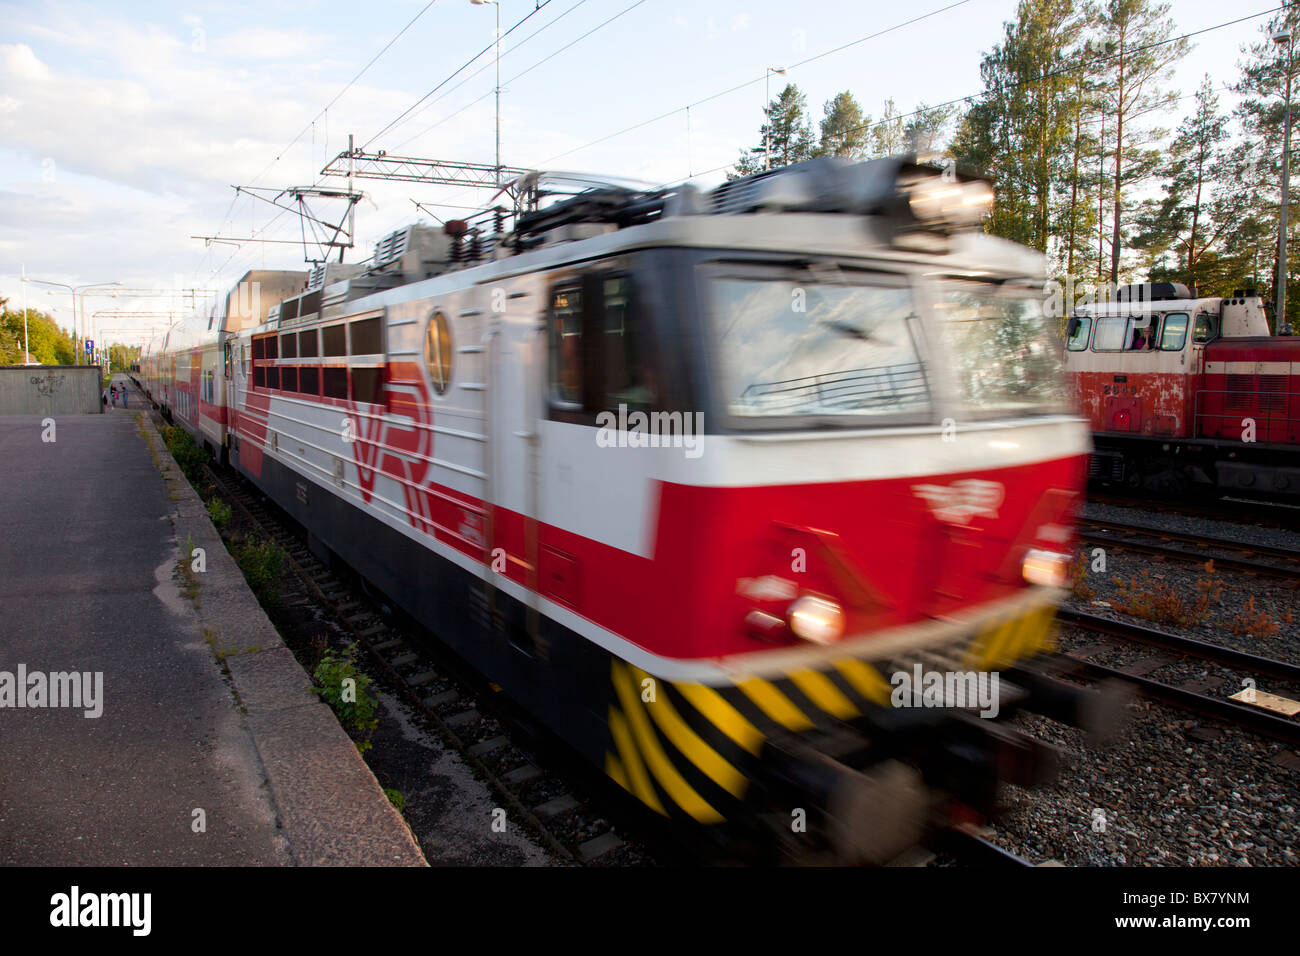 Passenger train with electric locomotive leaving railway station , Finland - Stock Image